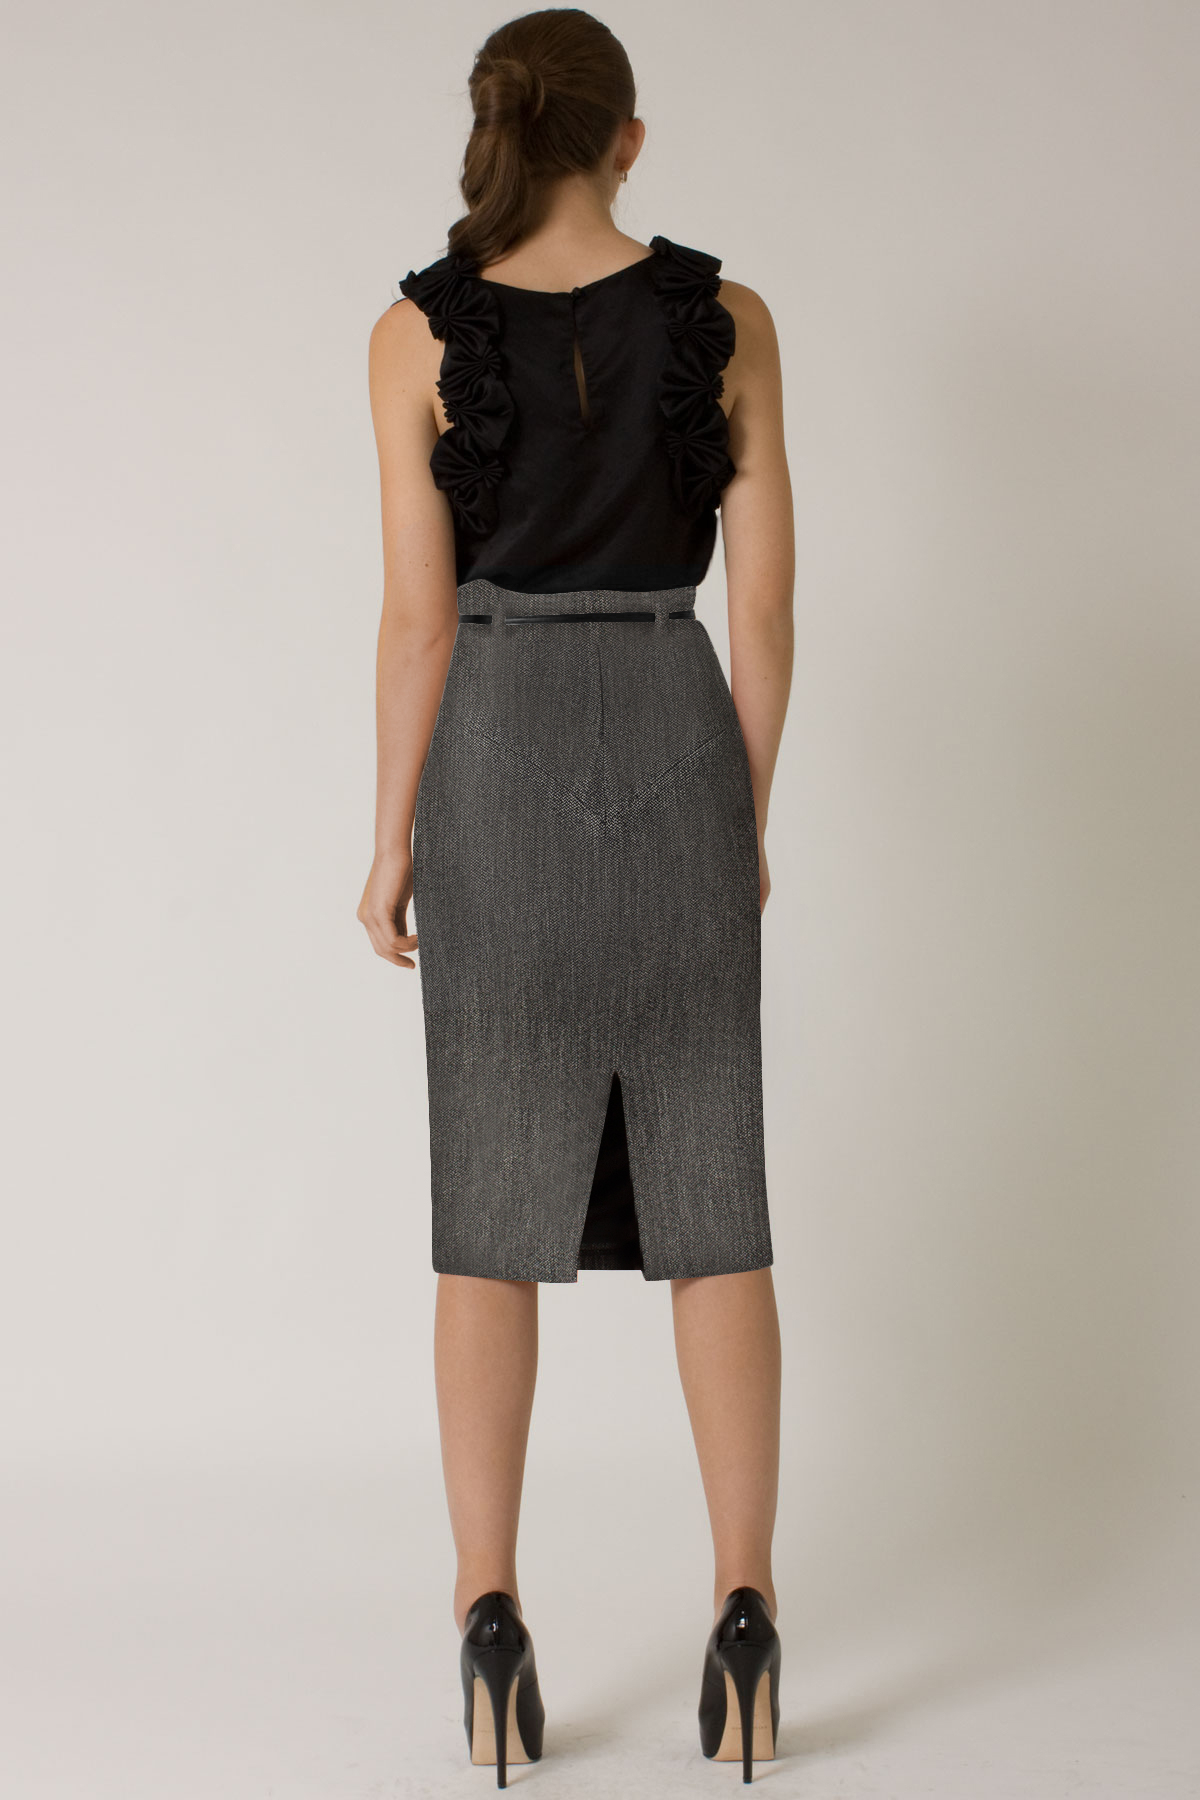 Shop for cheap Pencil Skirt? We have great Pencil Skirt on sale. Buy cheap Pencil Skirt online at bestsfilete.cf today!